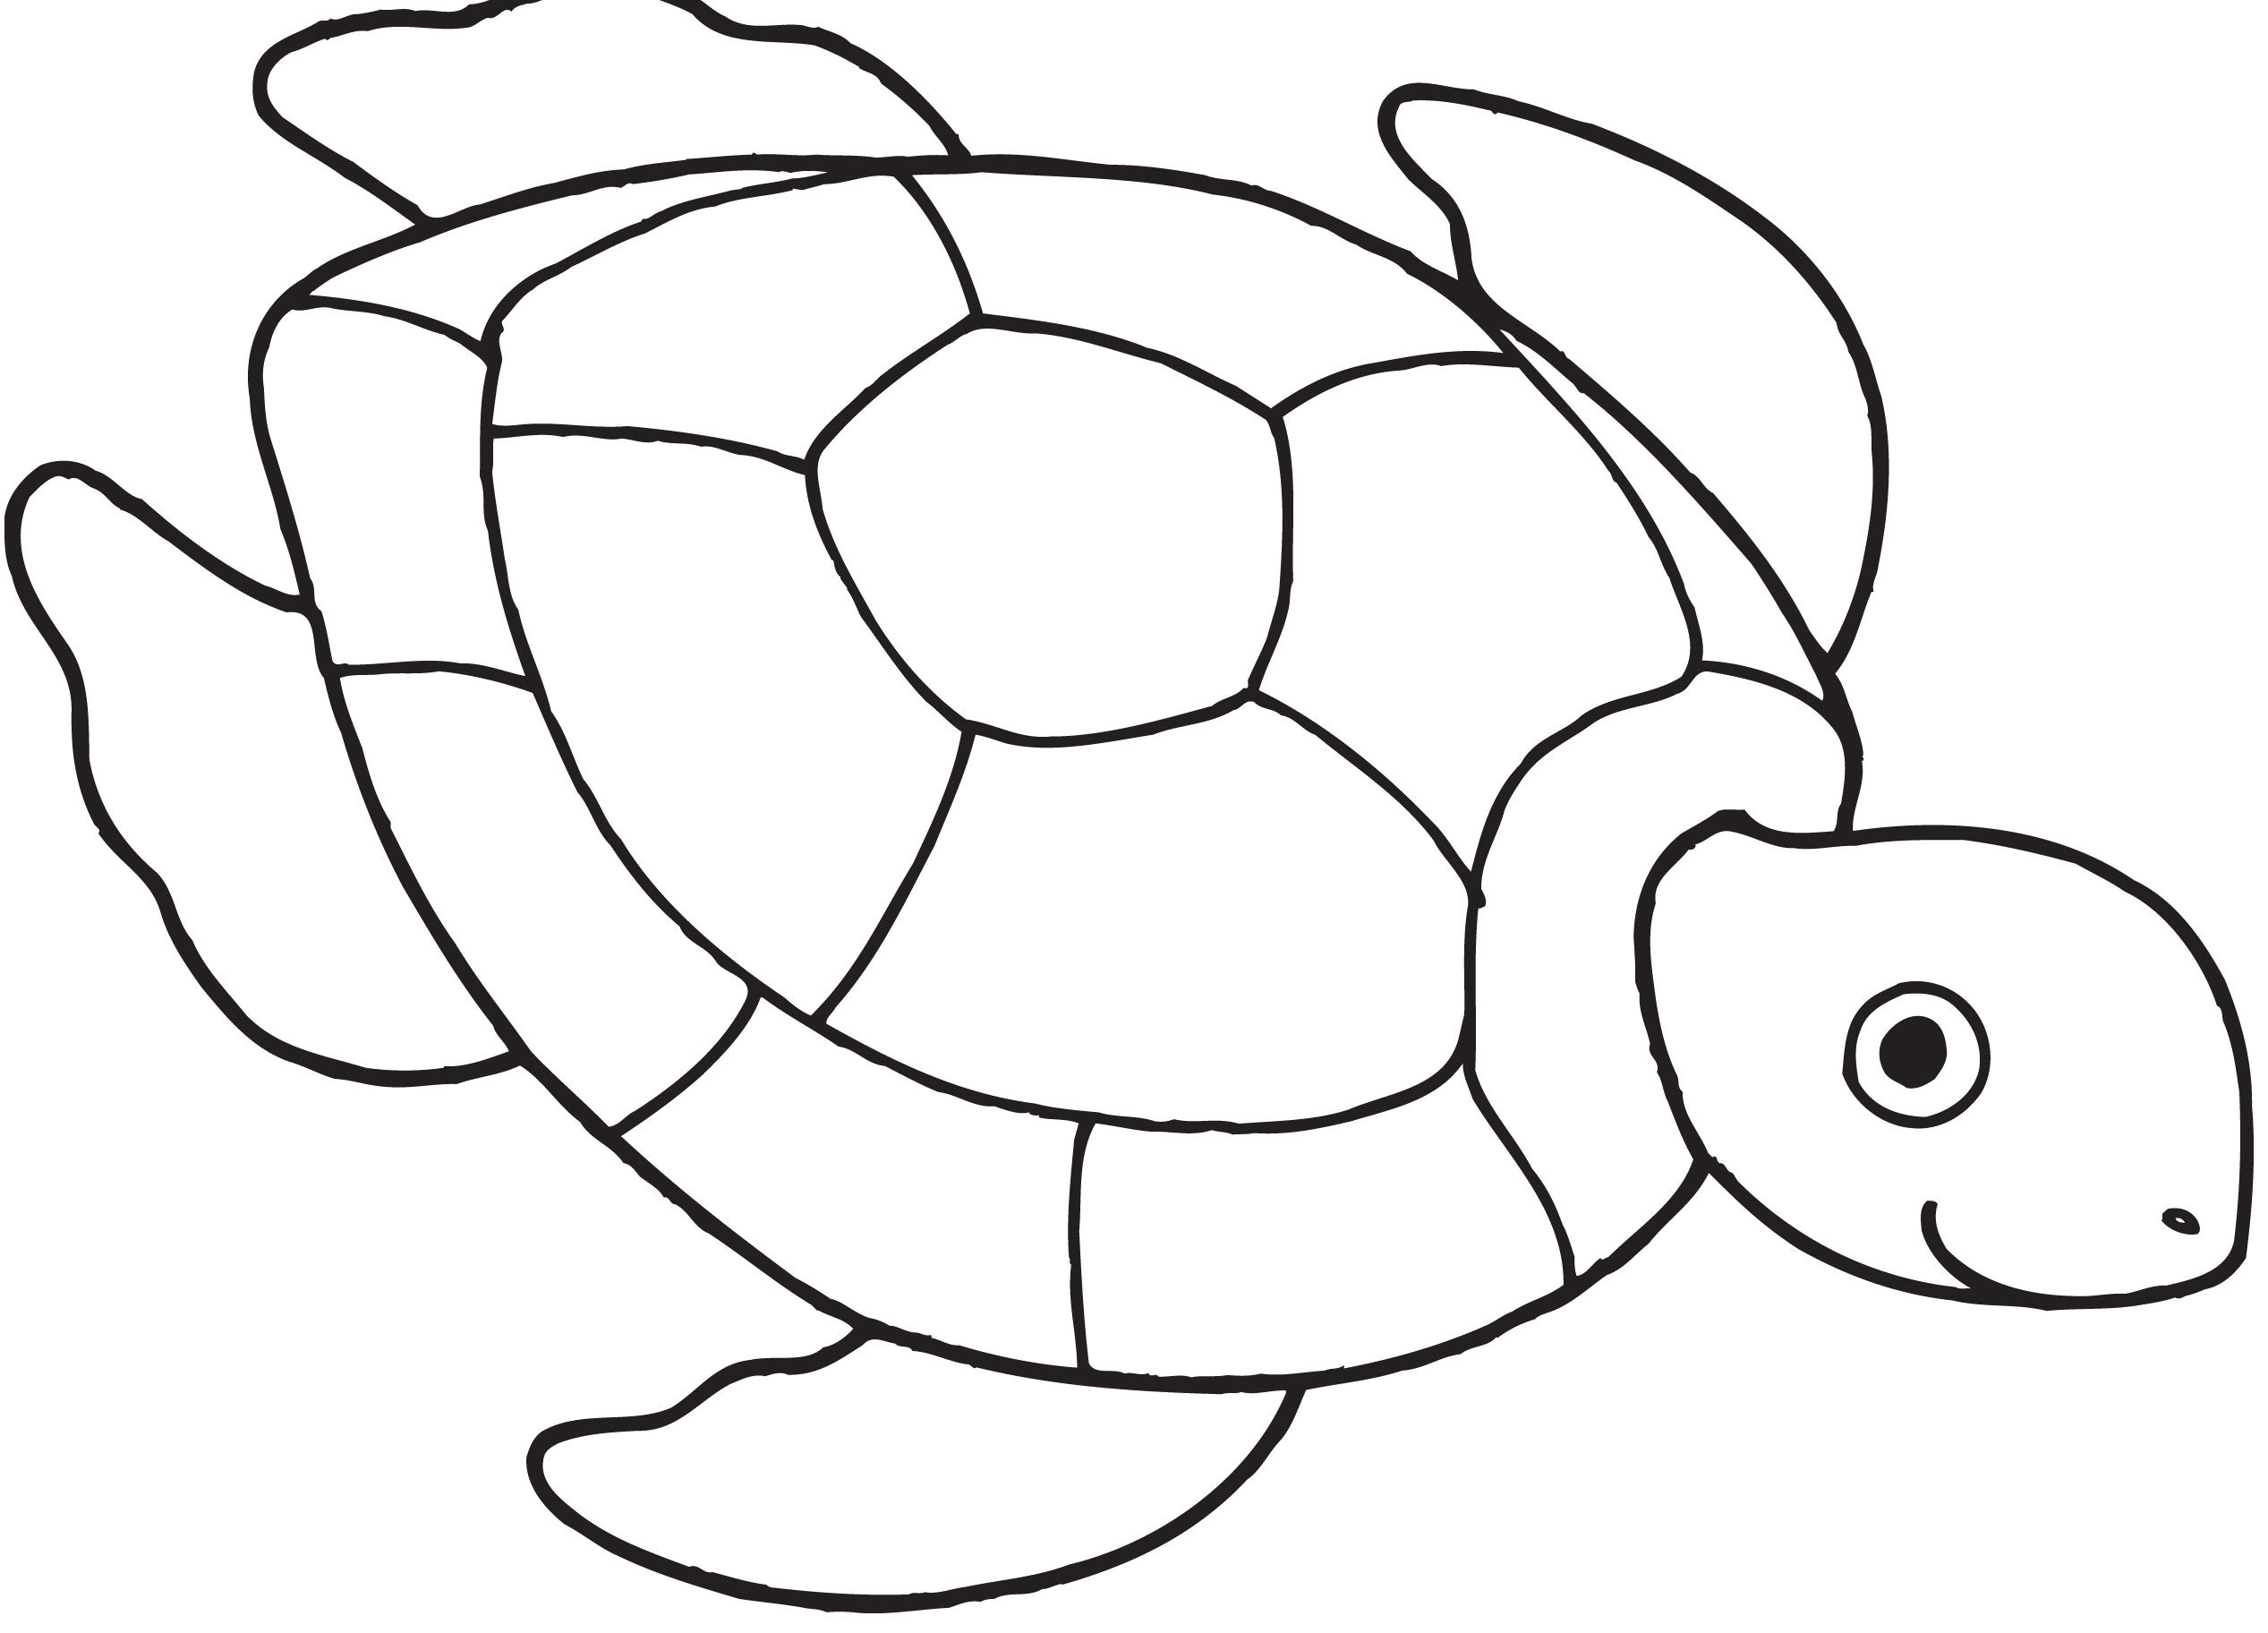 Mandala coloring pages turtles - Sea Turtle Coloring Page Tweeting Cities Free Coloring Pages